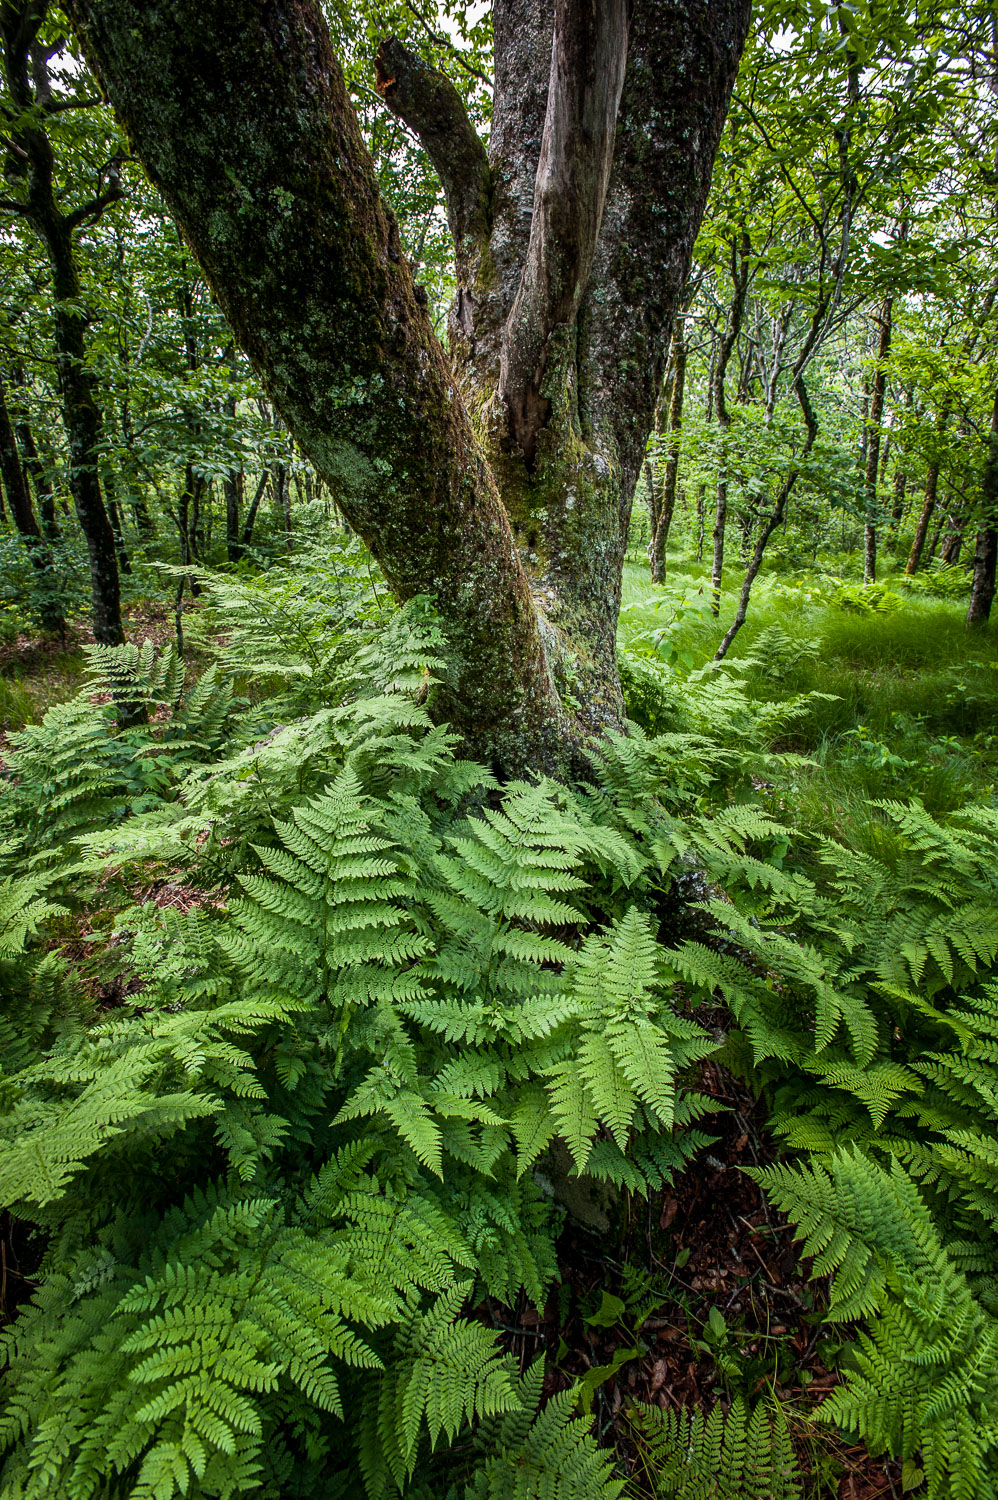 Lush Ferns in Forest surround a Beech Trunk, Smoky Mountains, Bl